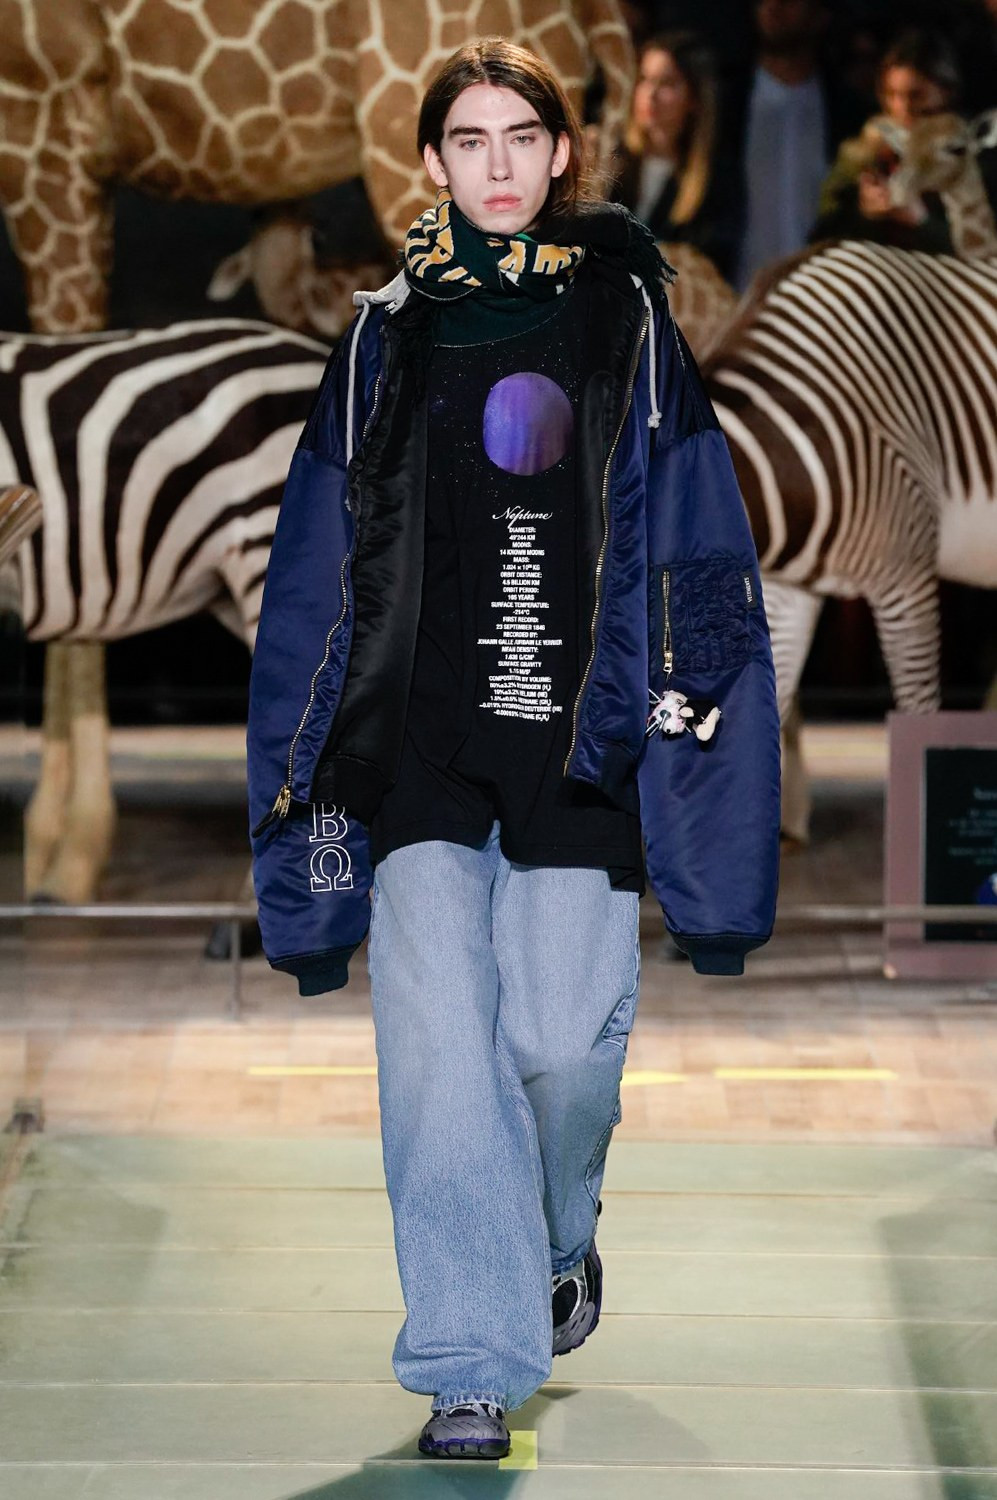 https---vetements-aw19-dtf-magazine.com-image-2019-01-vetements-fall-winter-2019-paris-fashion-week-24